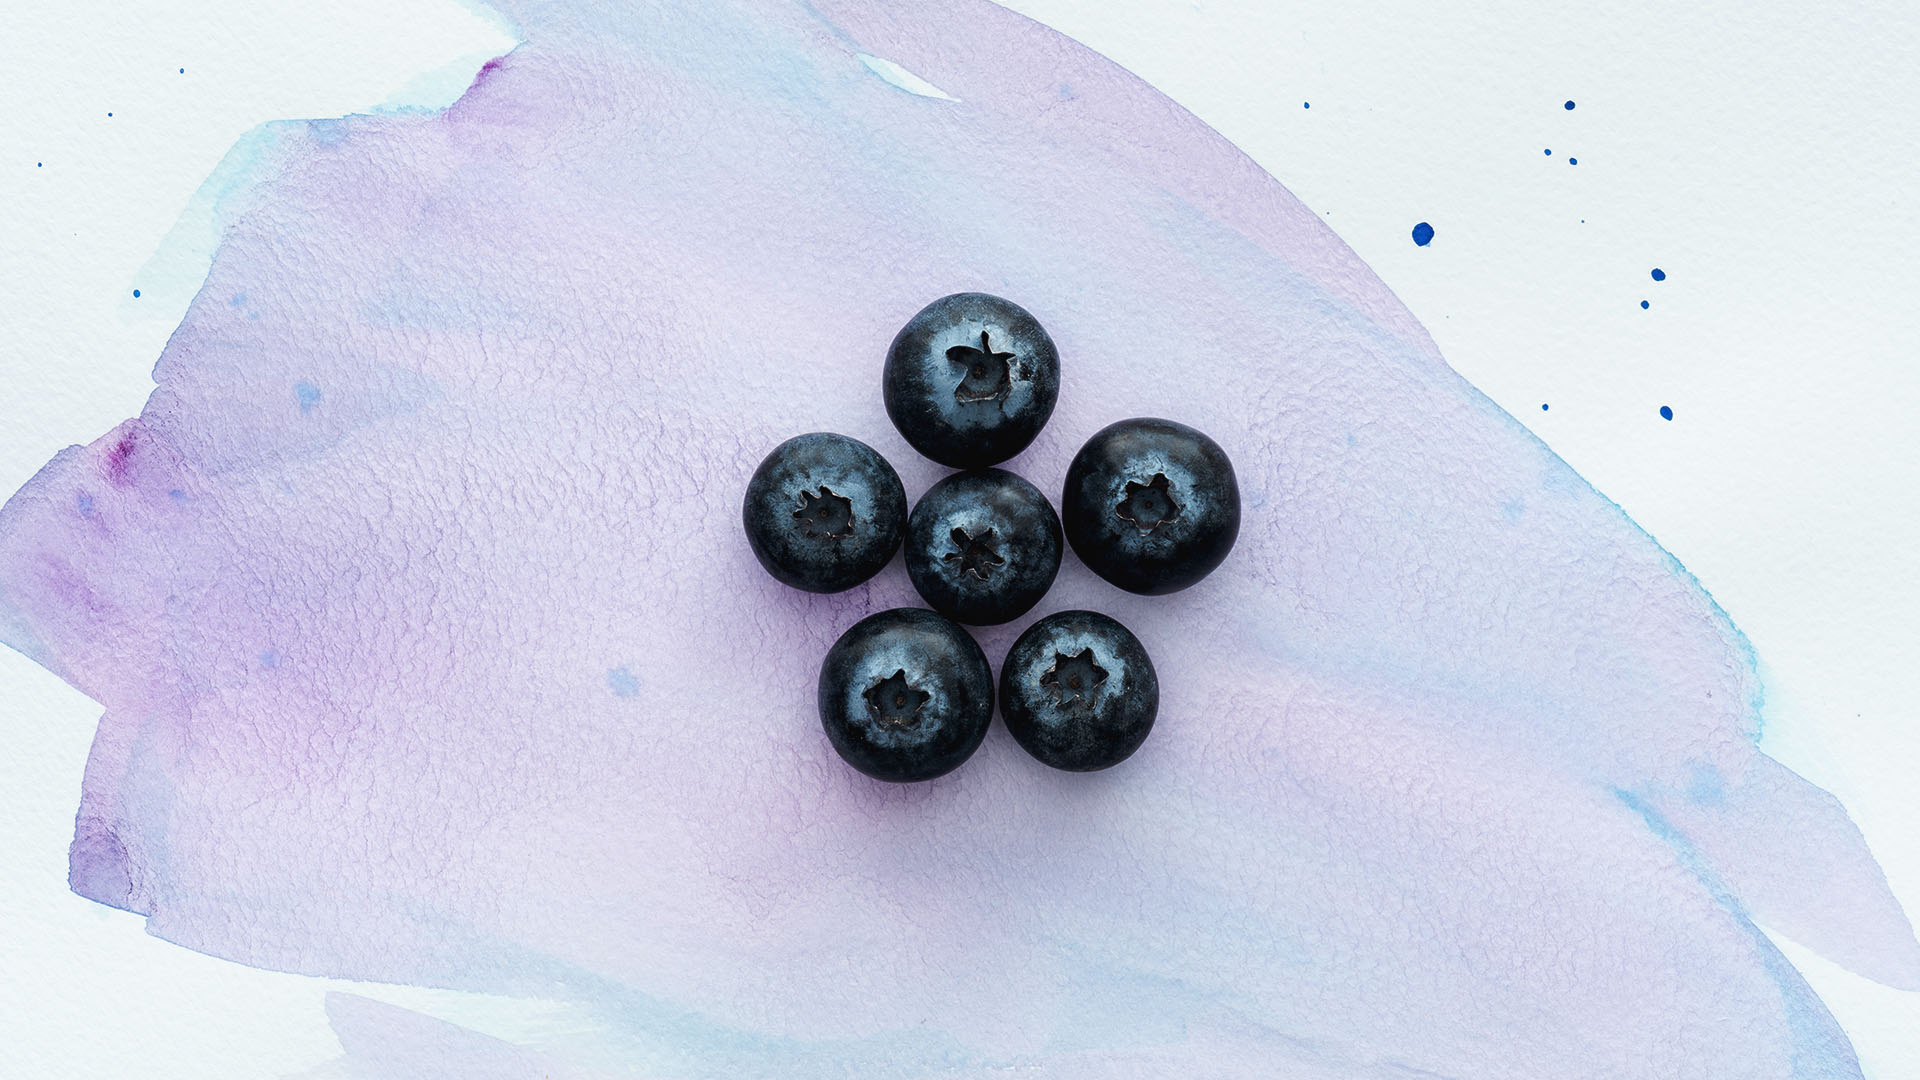 top view of ripe blueberries on white surface with purple waterc